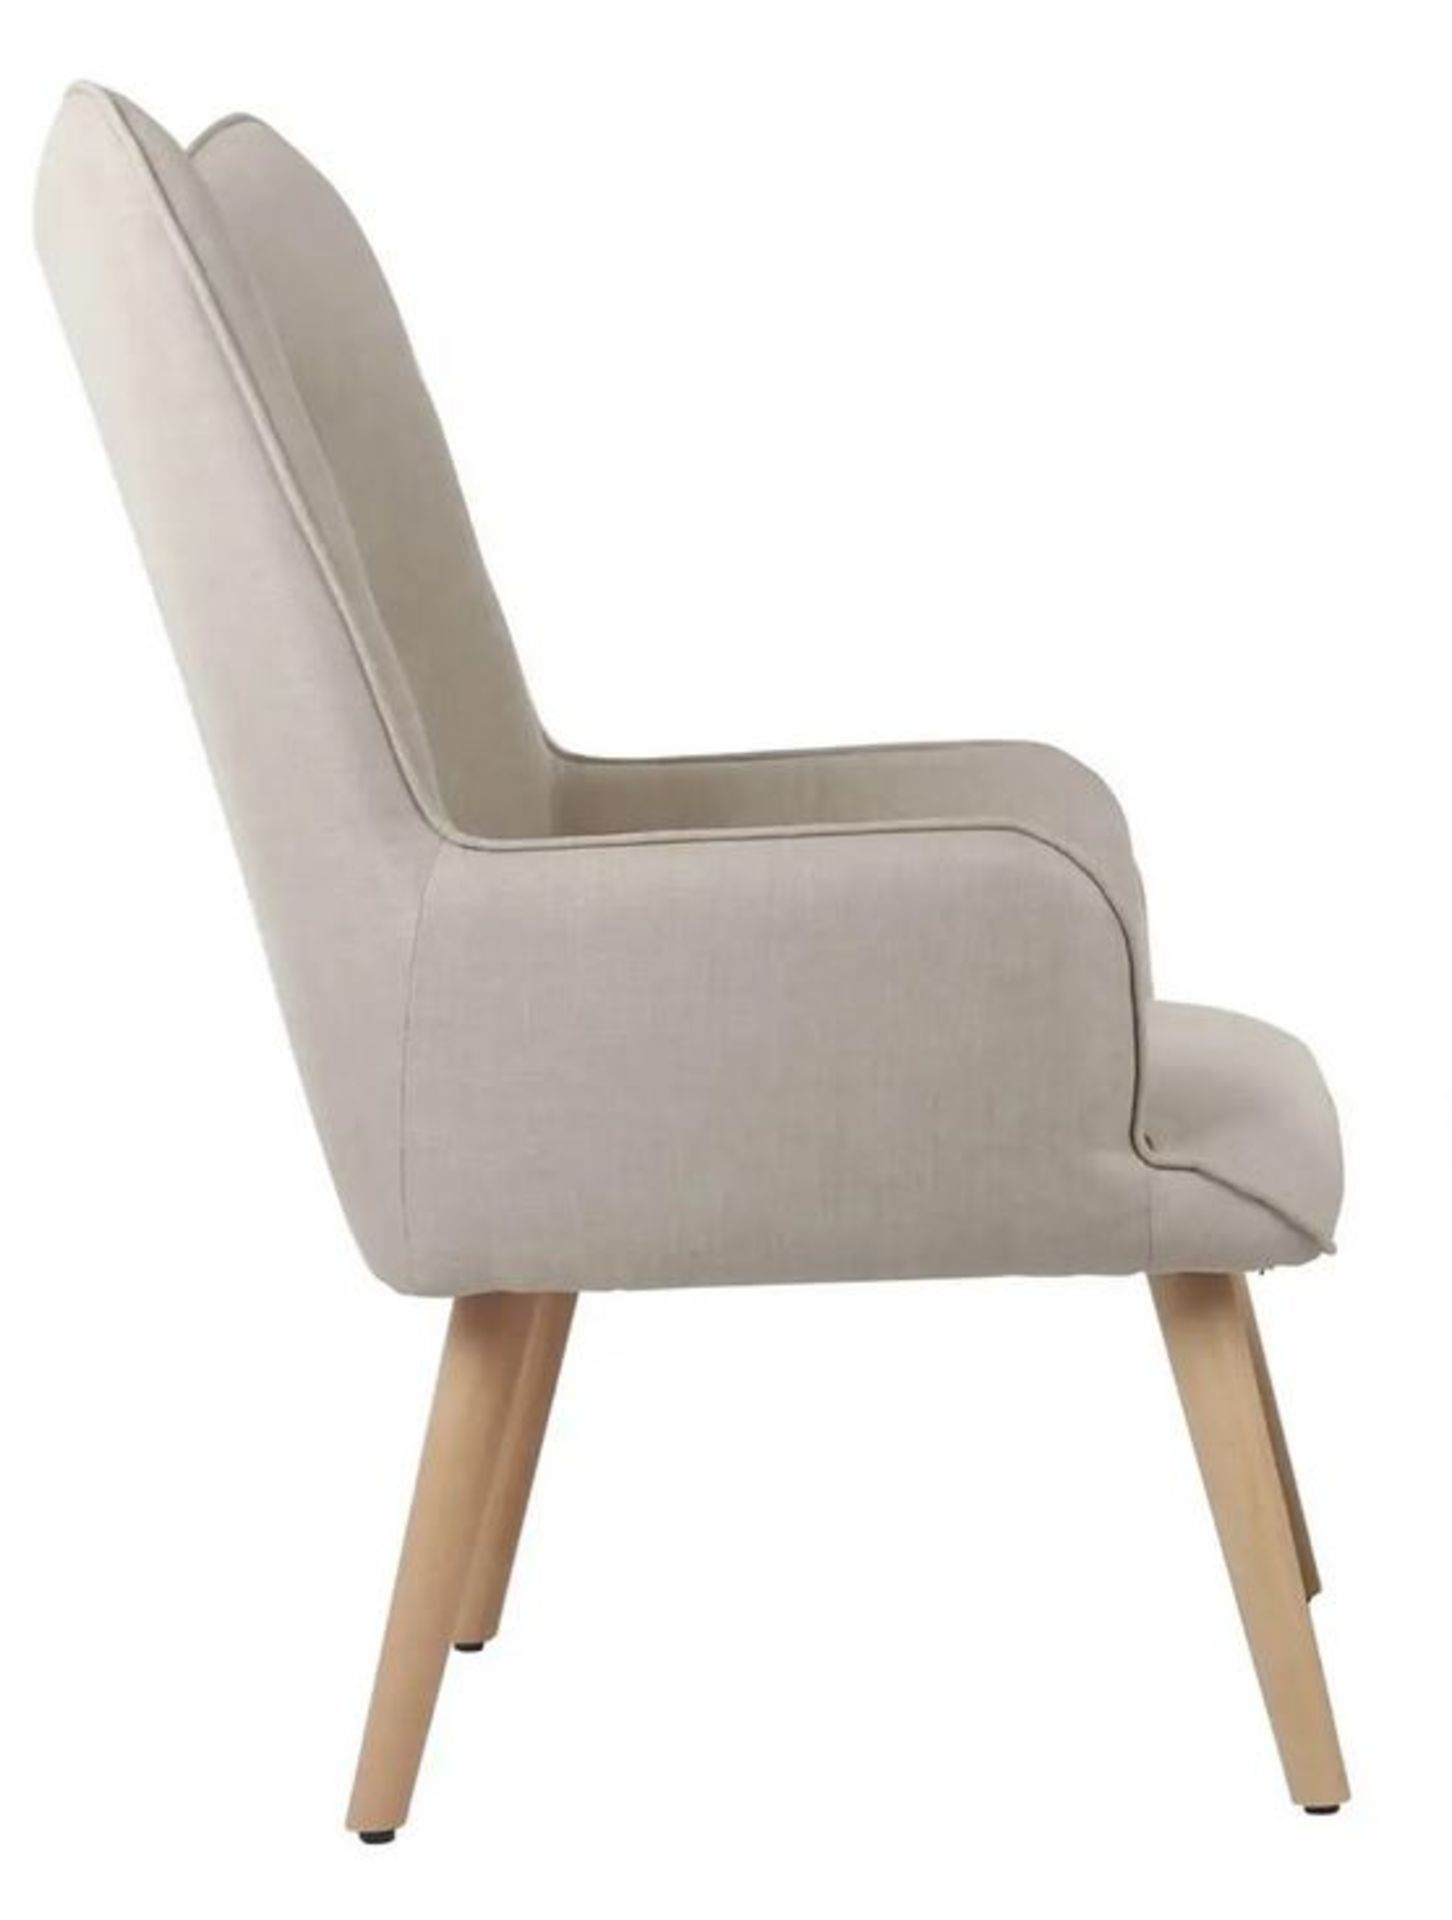 (2I) 2x Leon Beige Lounge Chairs (Only 1x Leg Set With This Lot). Both Units Appear Clean, Unused. - Image 2 of 7